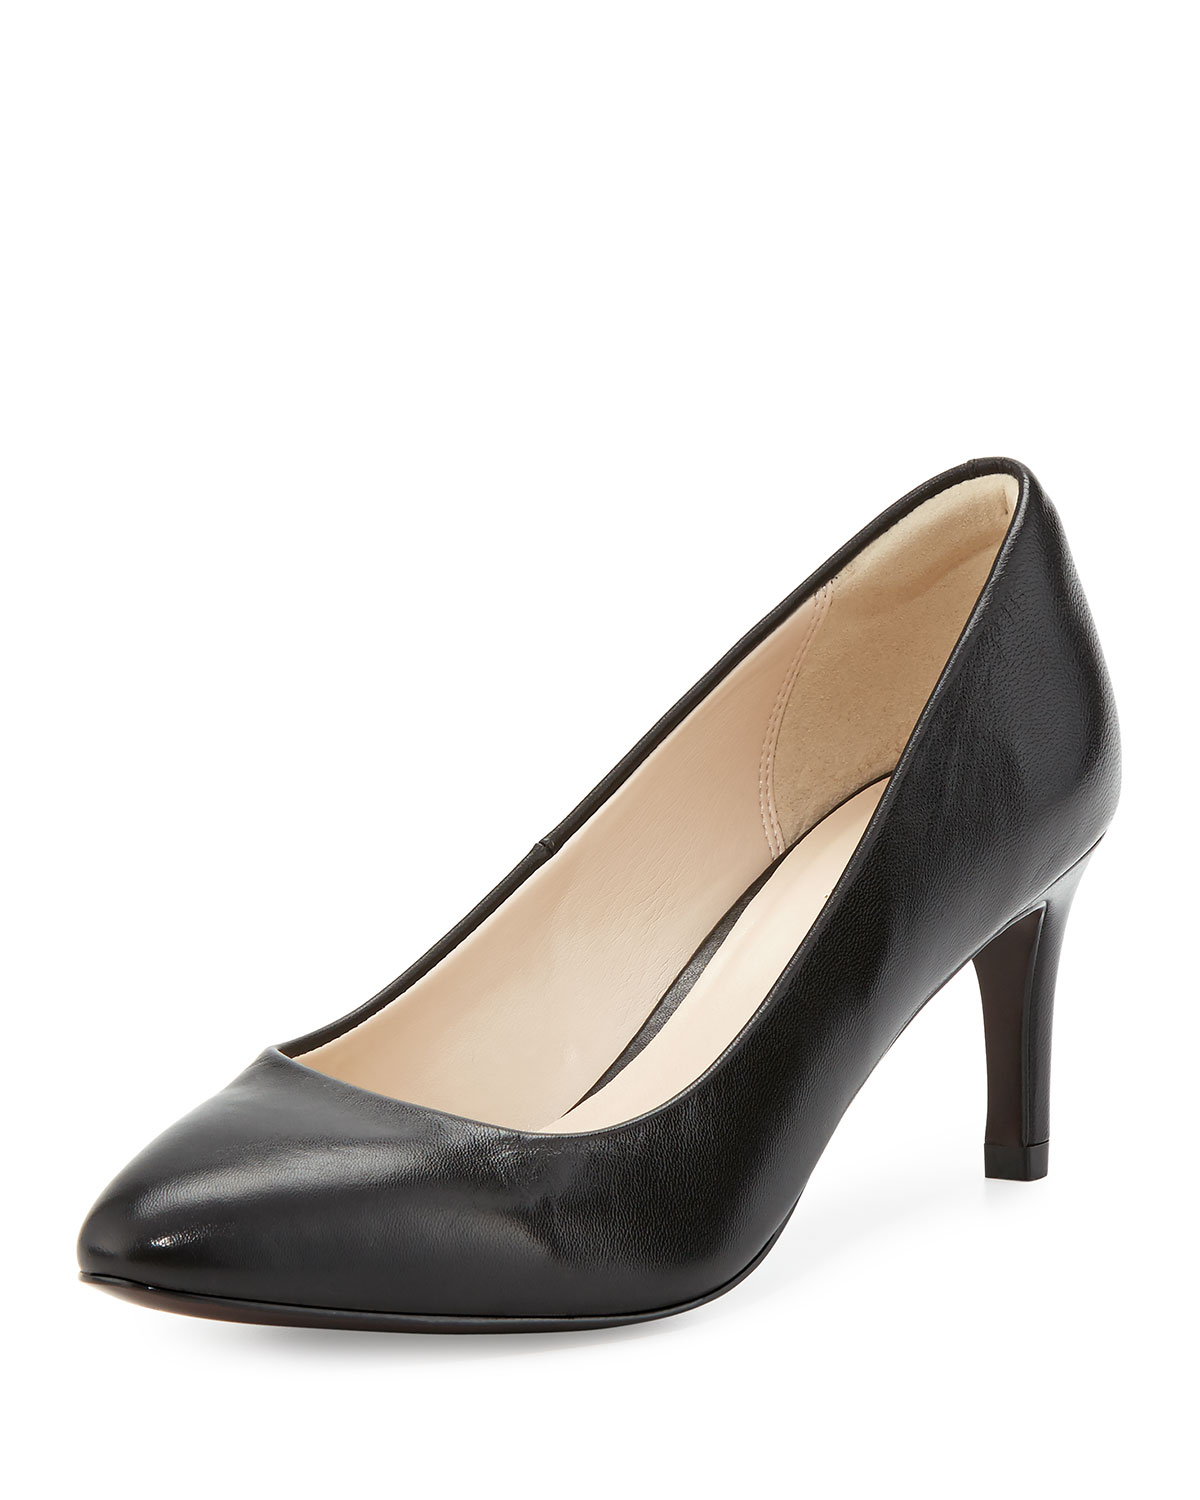 a54c51f3e47 Carla Grand.OS Leather Pointed-Toe Pump, Black